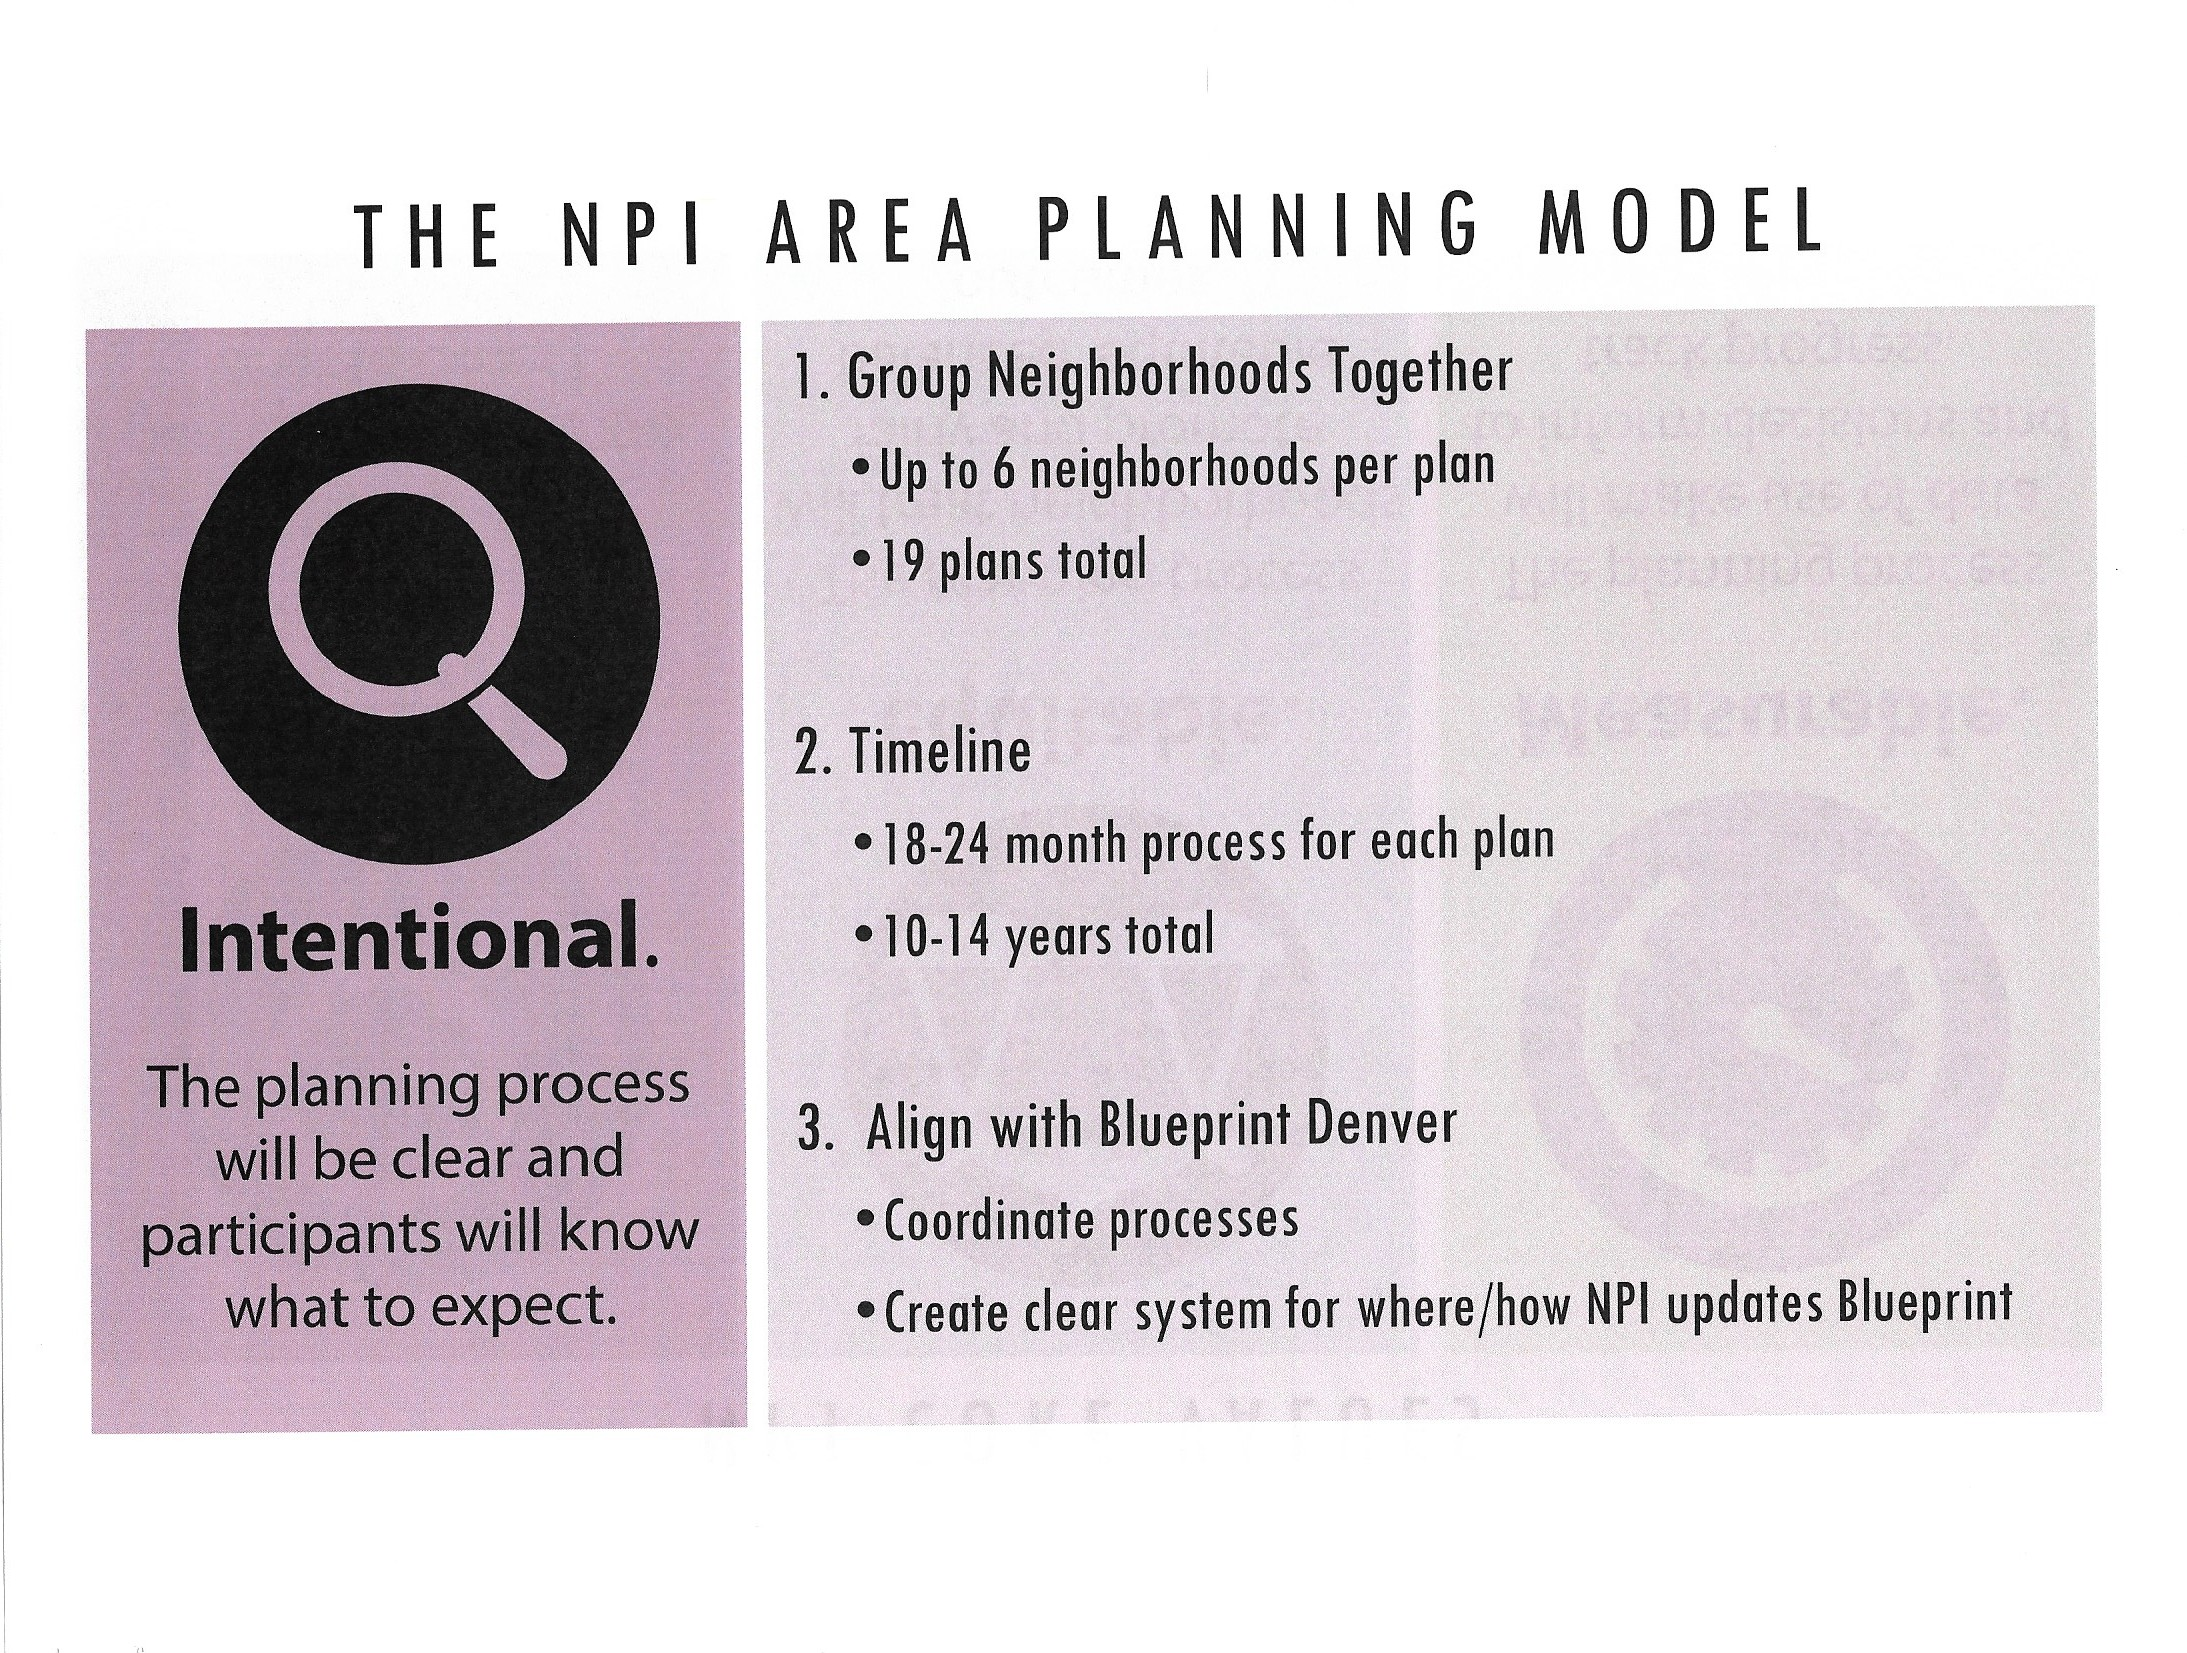 Neighborhood planning initiative 6 inter neighborhood cooperation published december 12 2016 at 2187 1653 in malvernweather Images